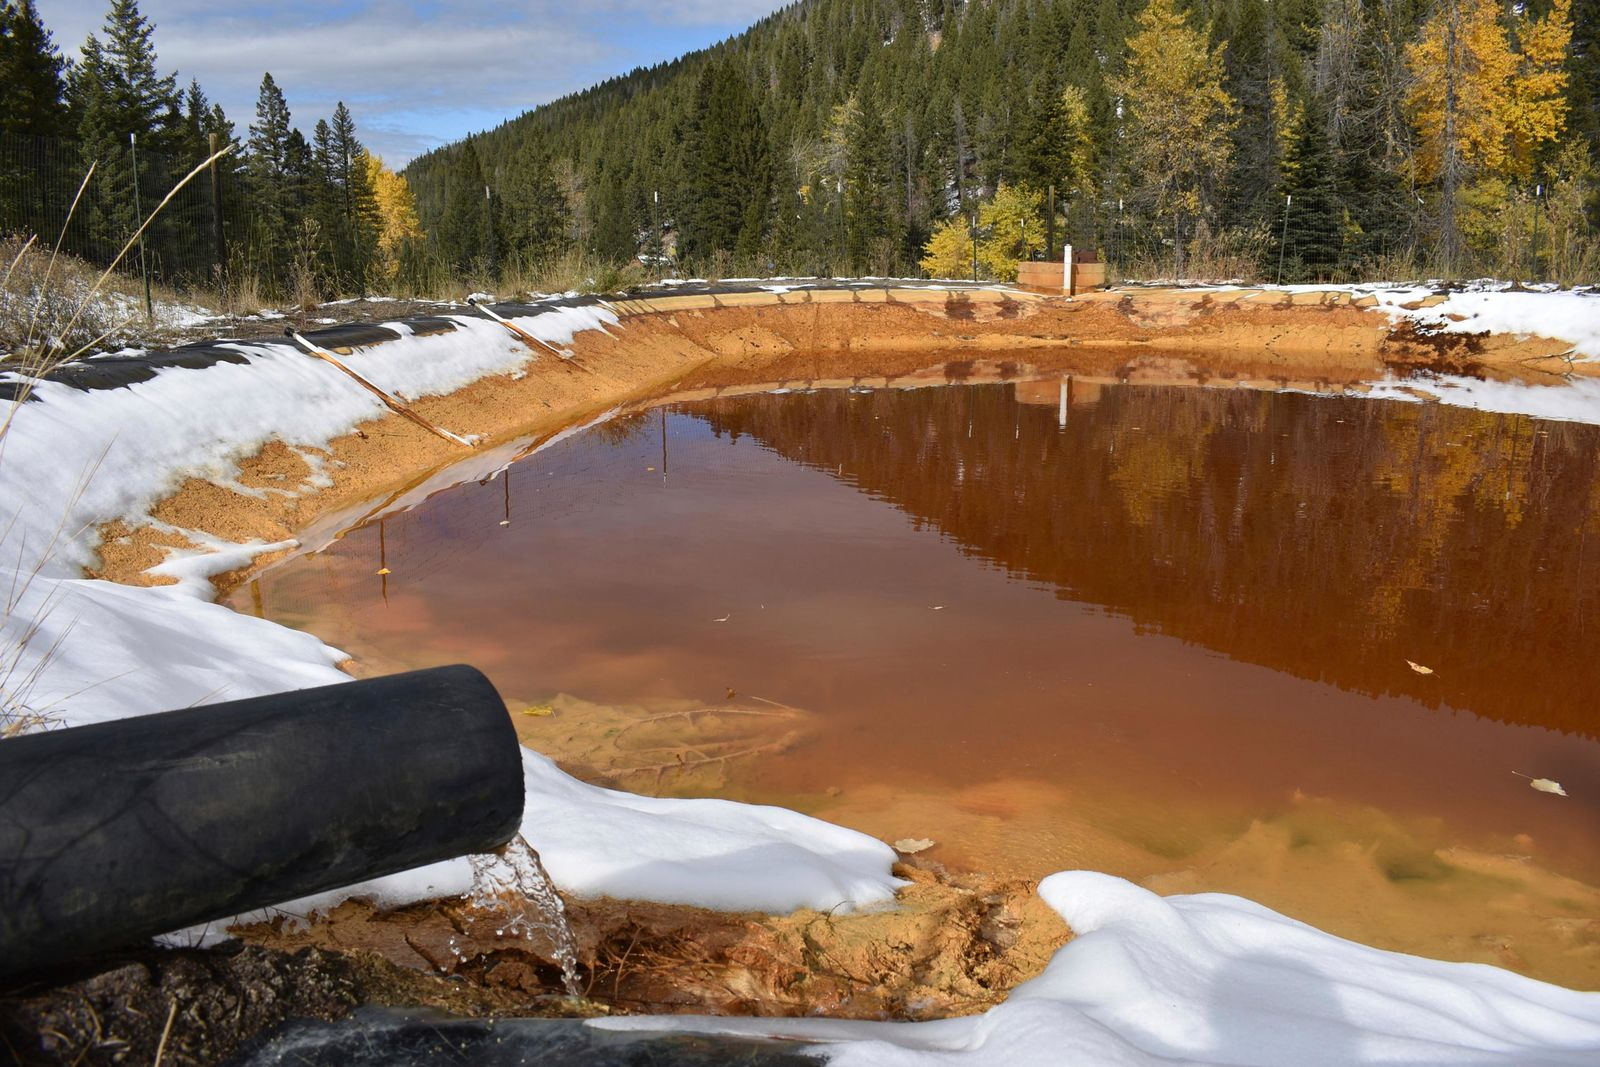 FILE - In this Oct. 12, 2018, file photo, water contaminated with arsenic, lead and zinc flows from a pipe out of the Lee Mountain mine and into a holding pond near Rimini, Mont. . (AP Photo/Matthew Brown, File)